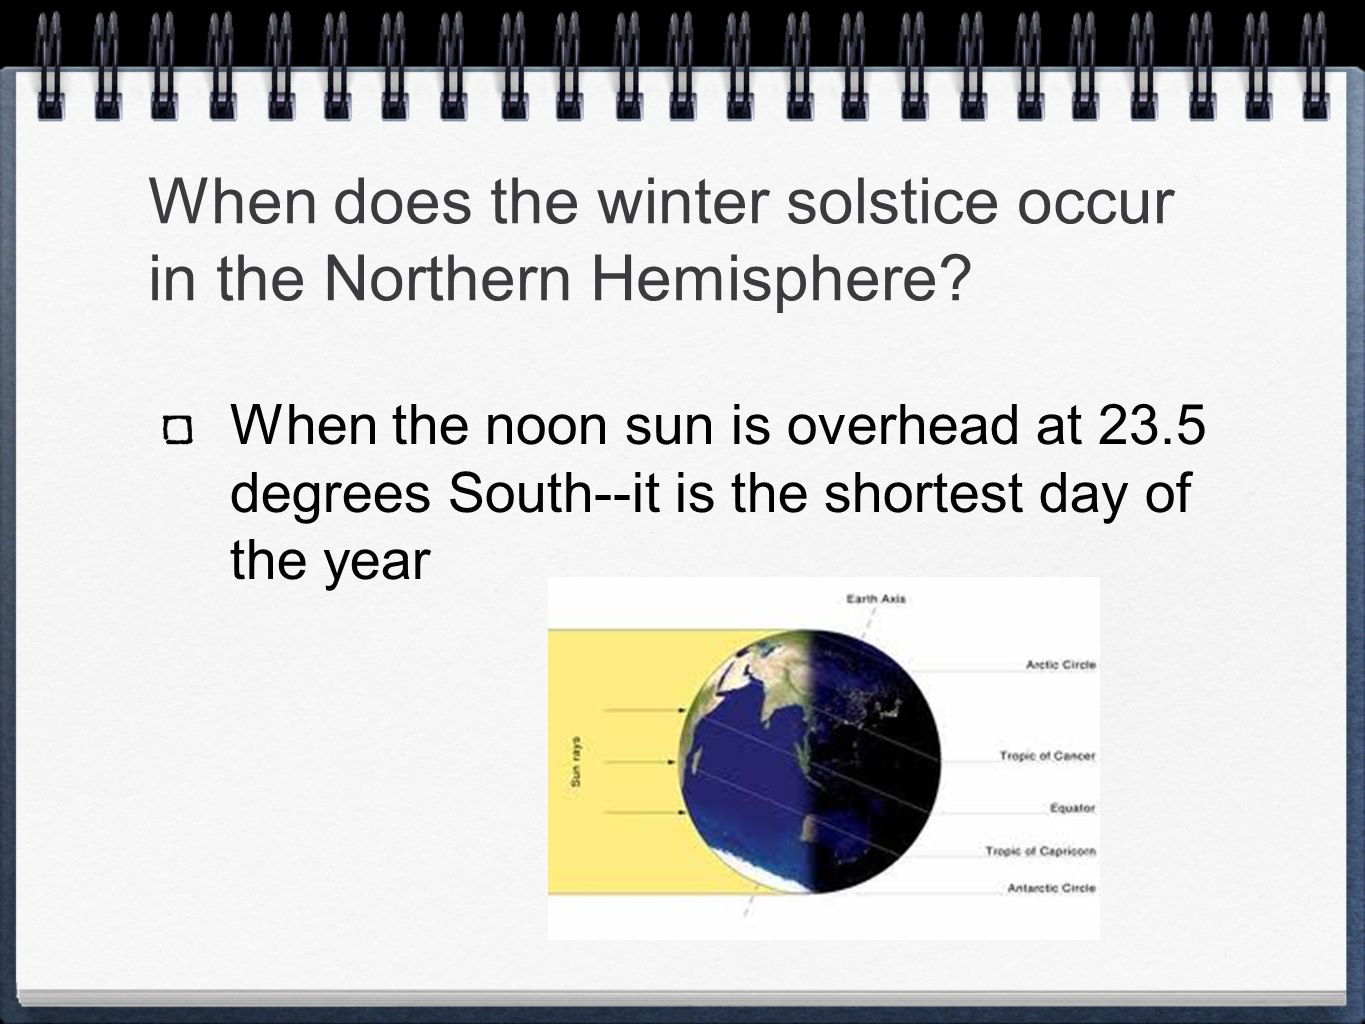 When does the winter solstice occur in the Northern Hemisphere